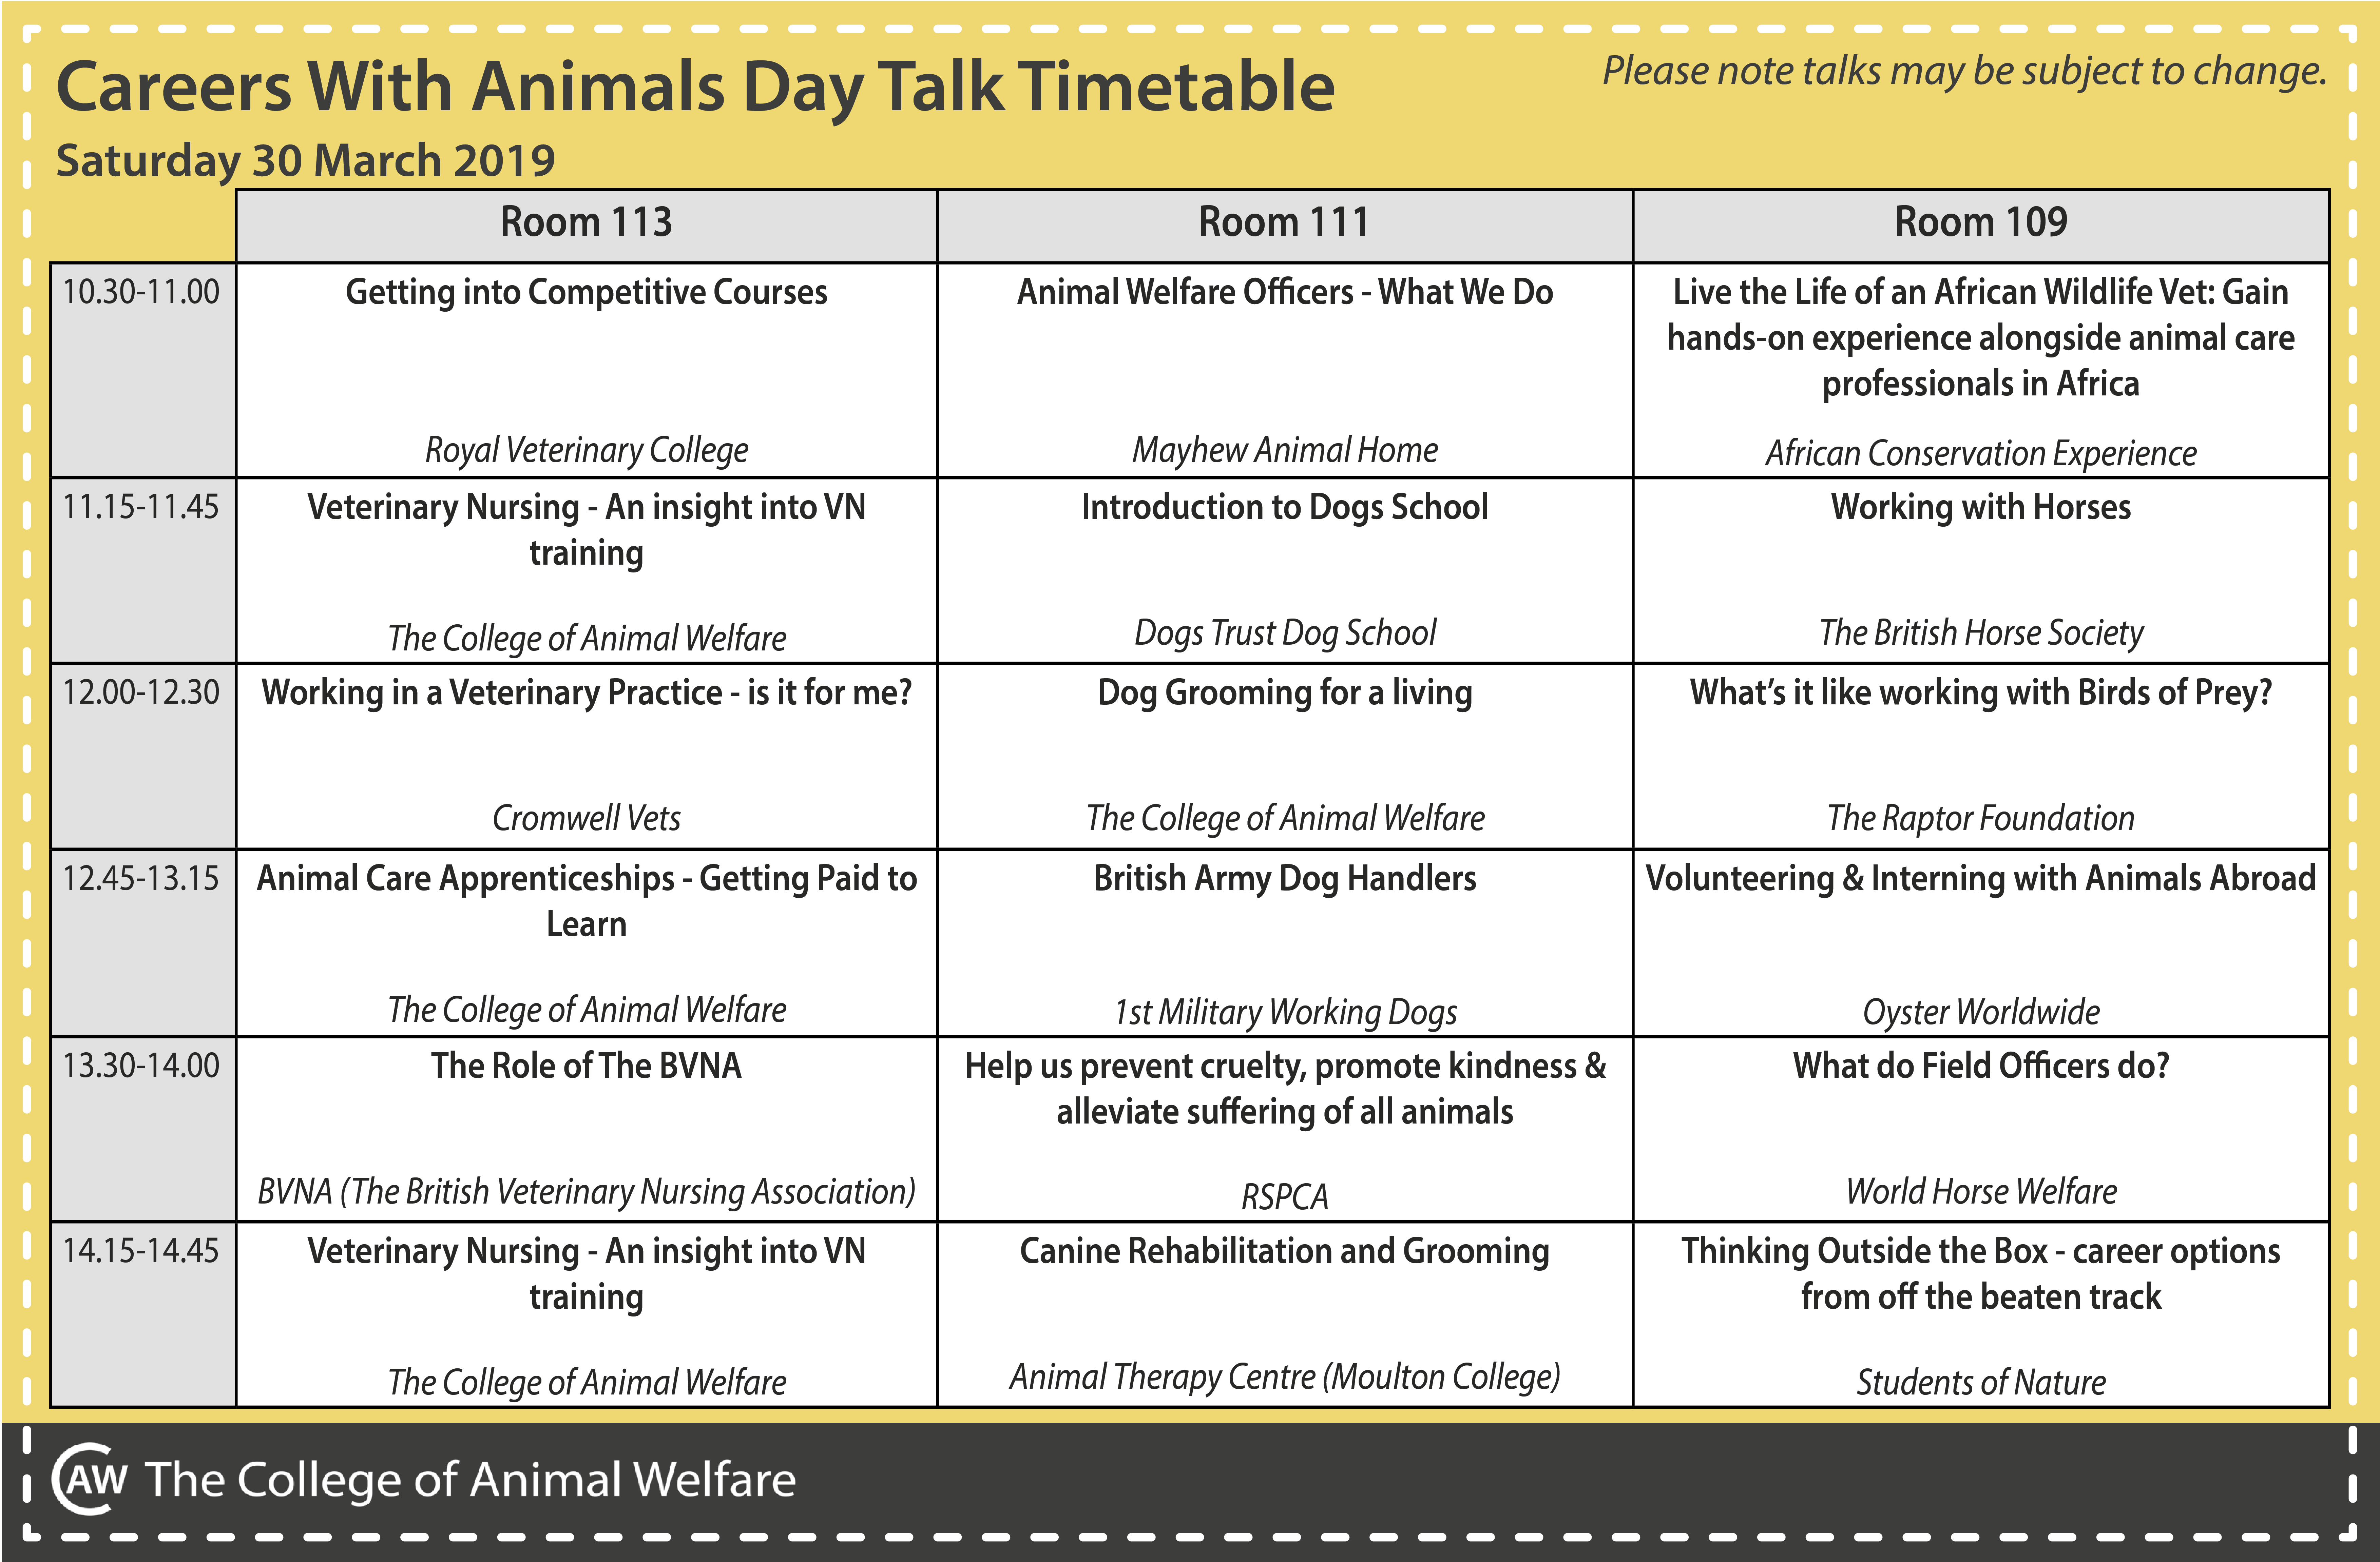 Careers With Animals Day talk timetable